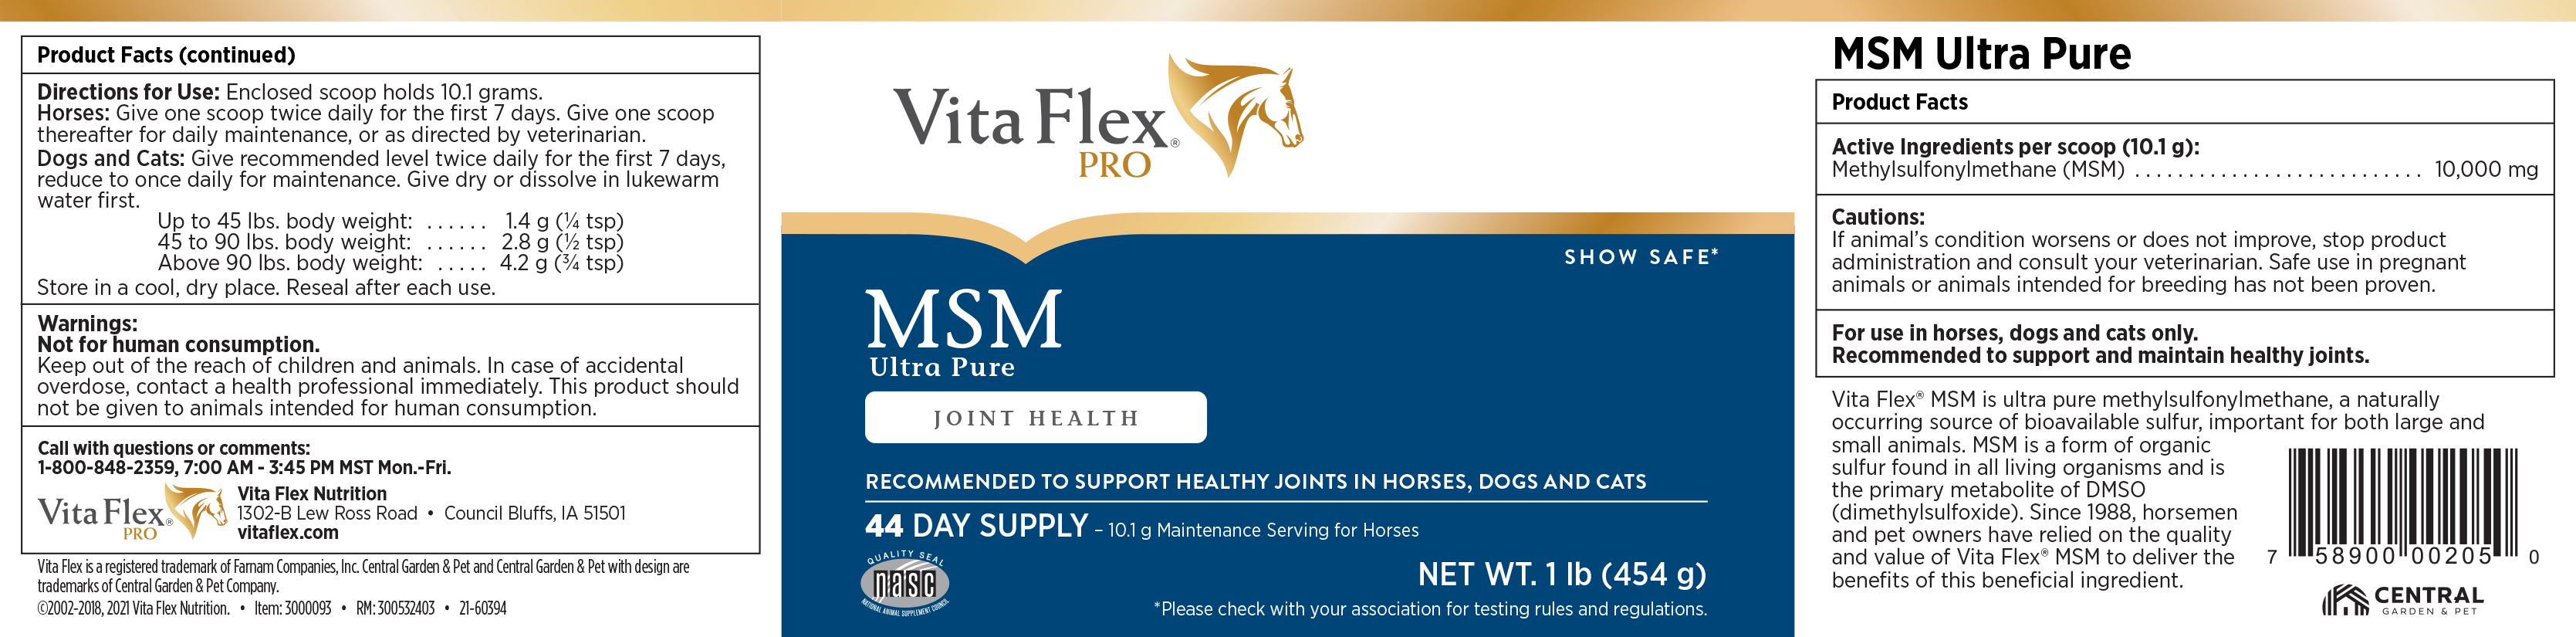 MSM Ultra Pure Supplement - Methylsulfonylmethane for Healthy Joints